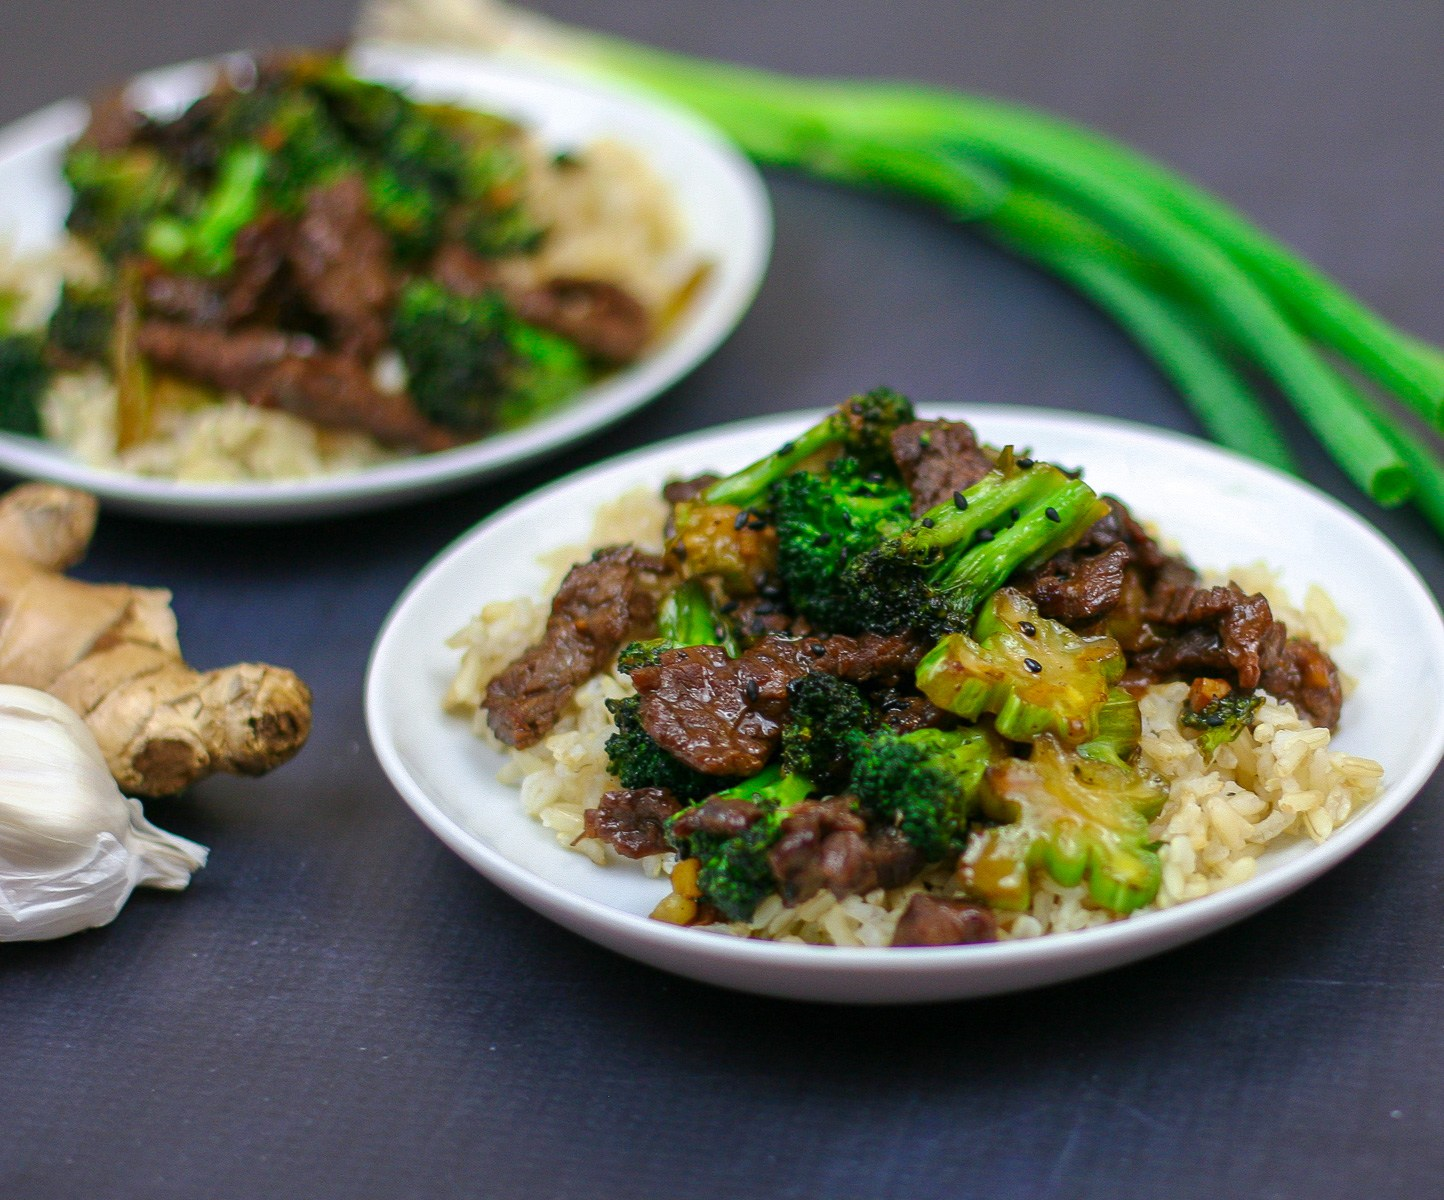 Beef-and-Broccoli-2